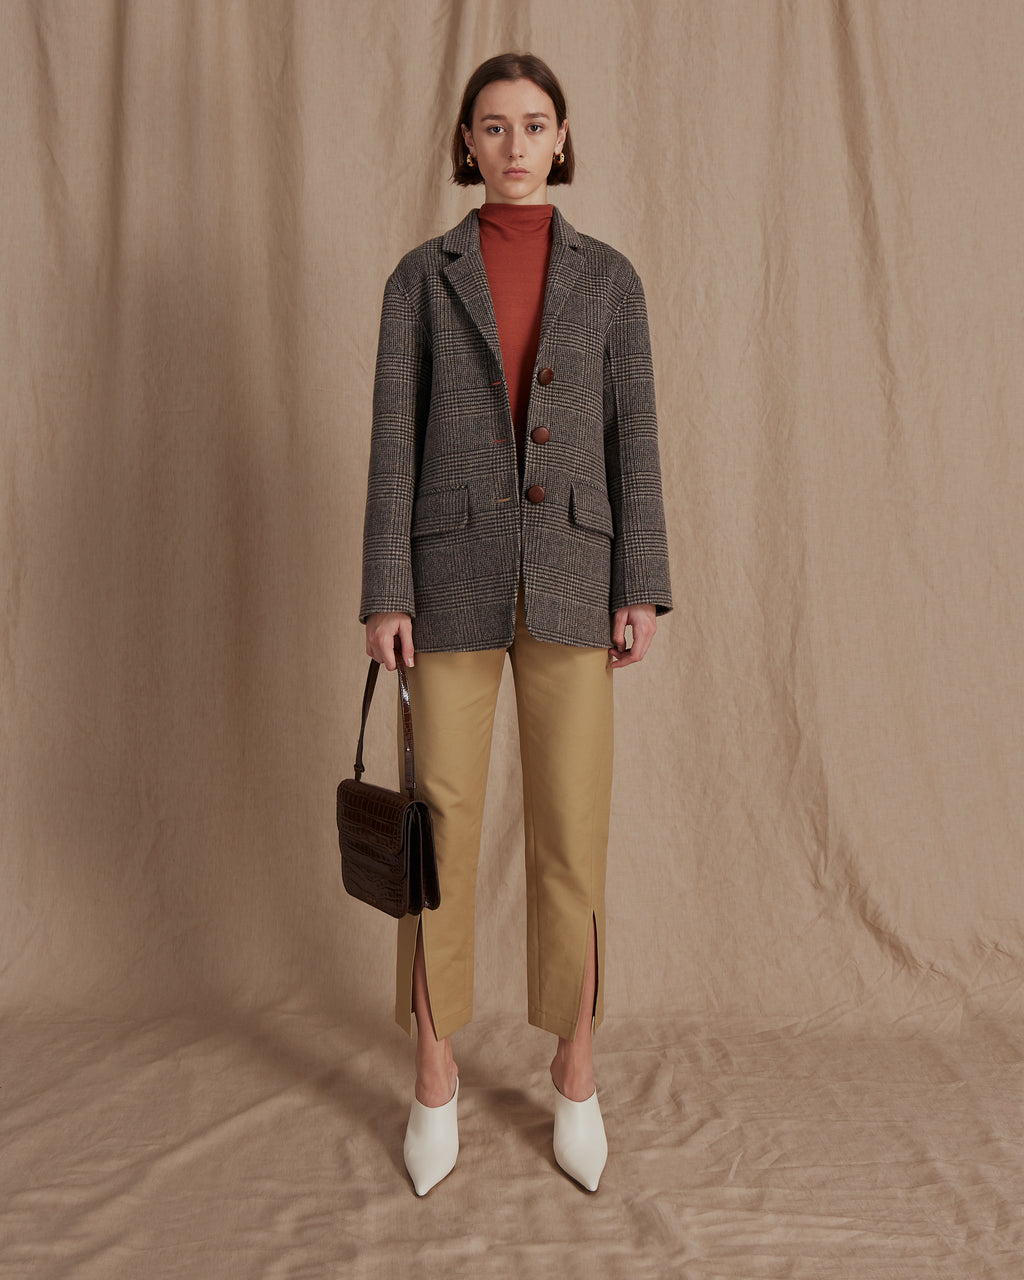 Maria Check Beige Wool Blazer - Exclusive